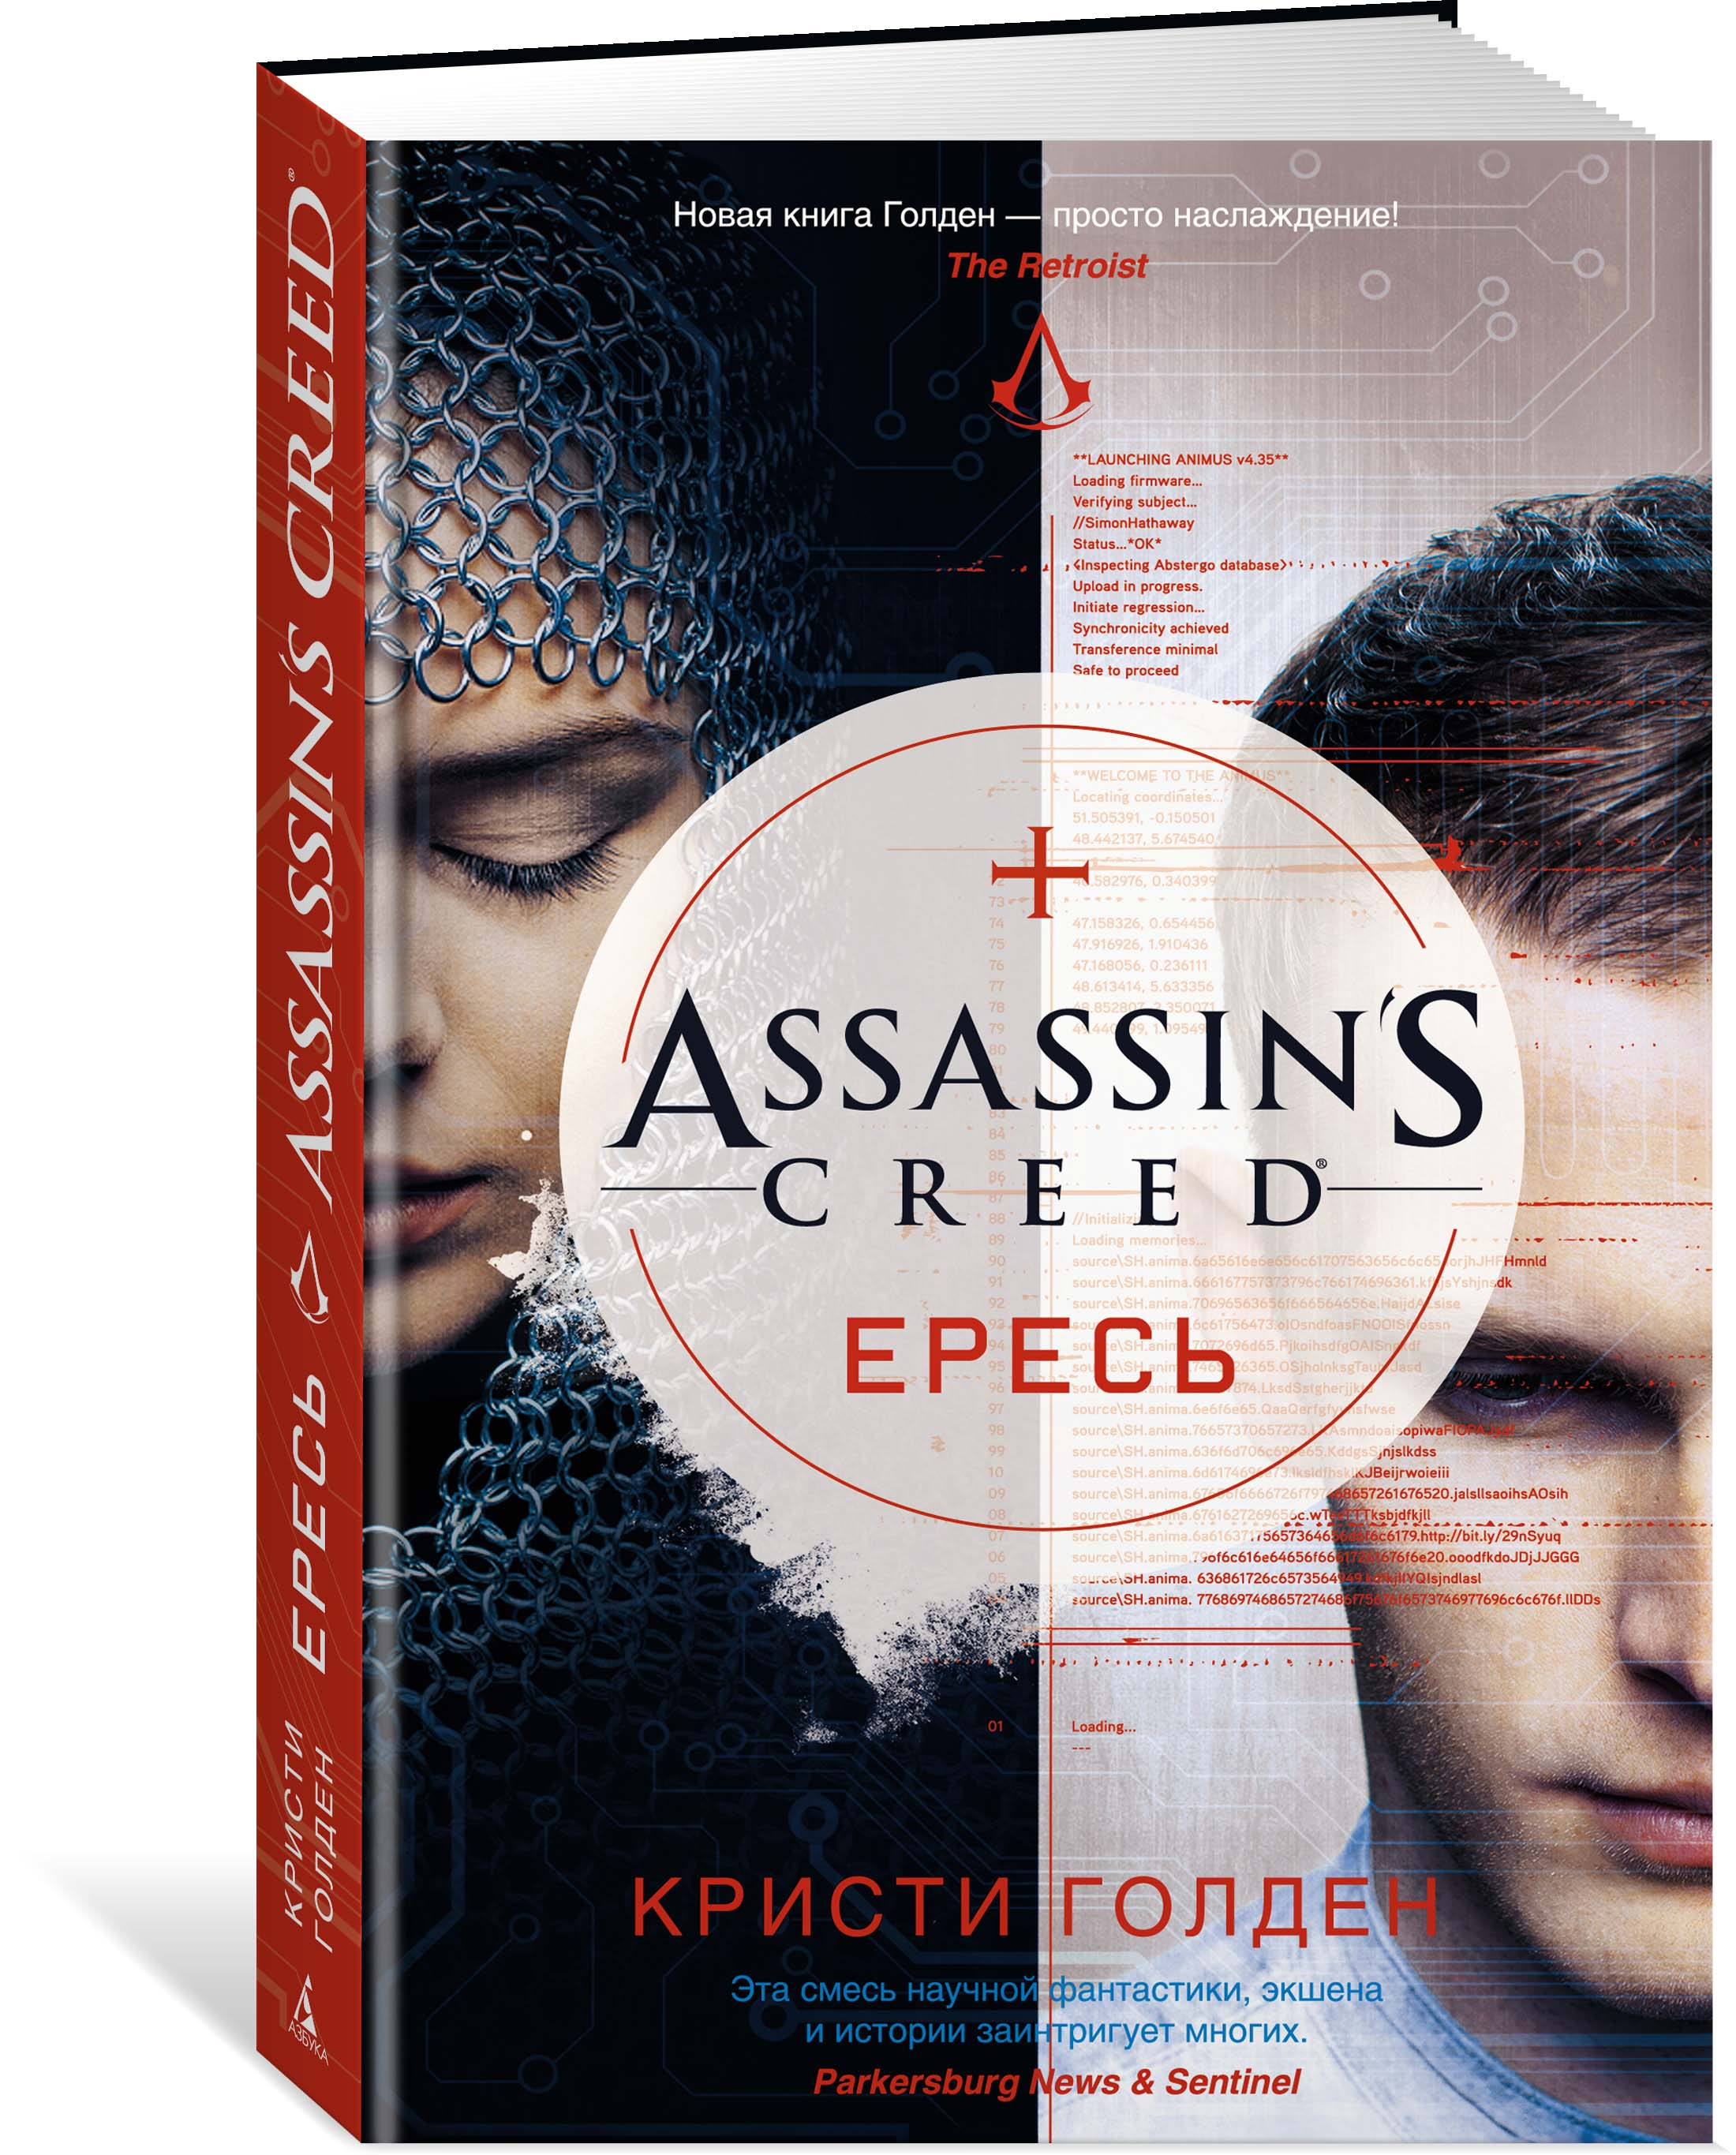 Assassin's Creed. Ересь. Кристи Голден